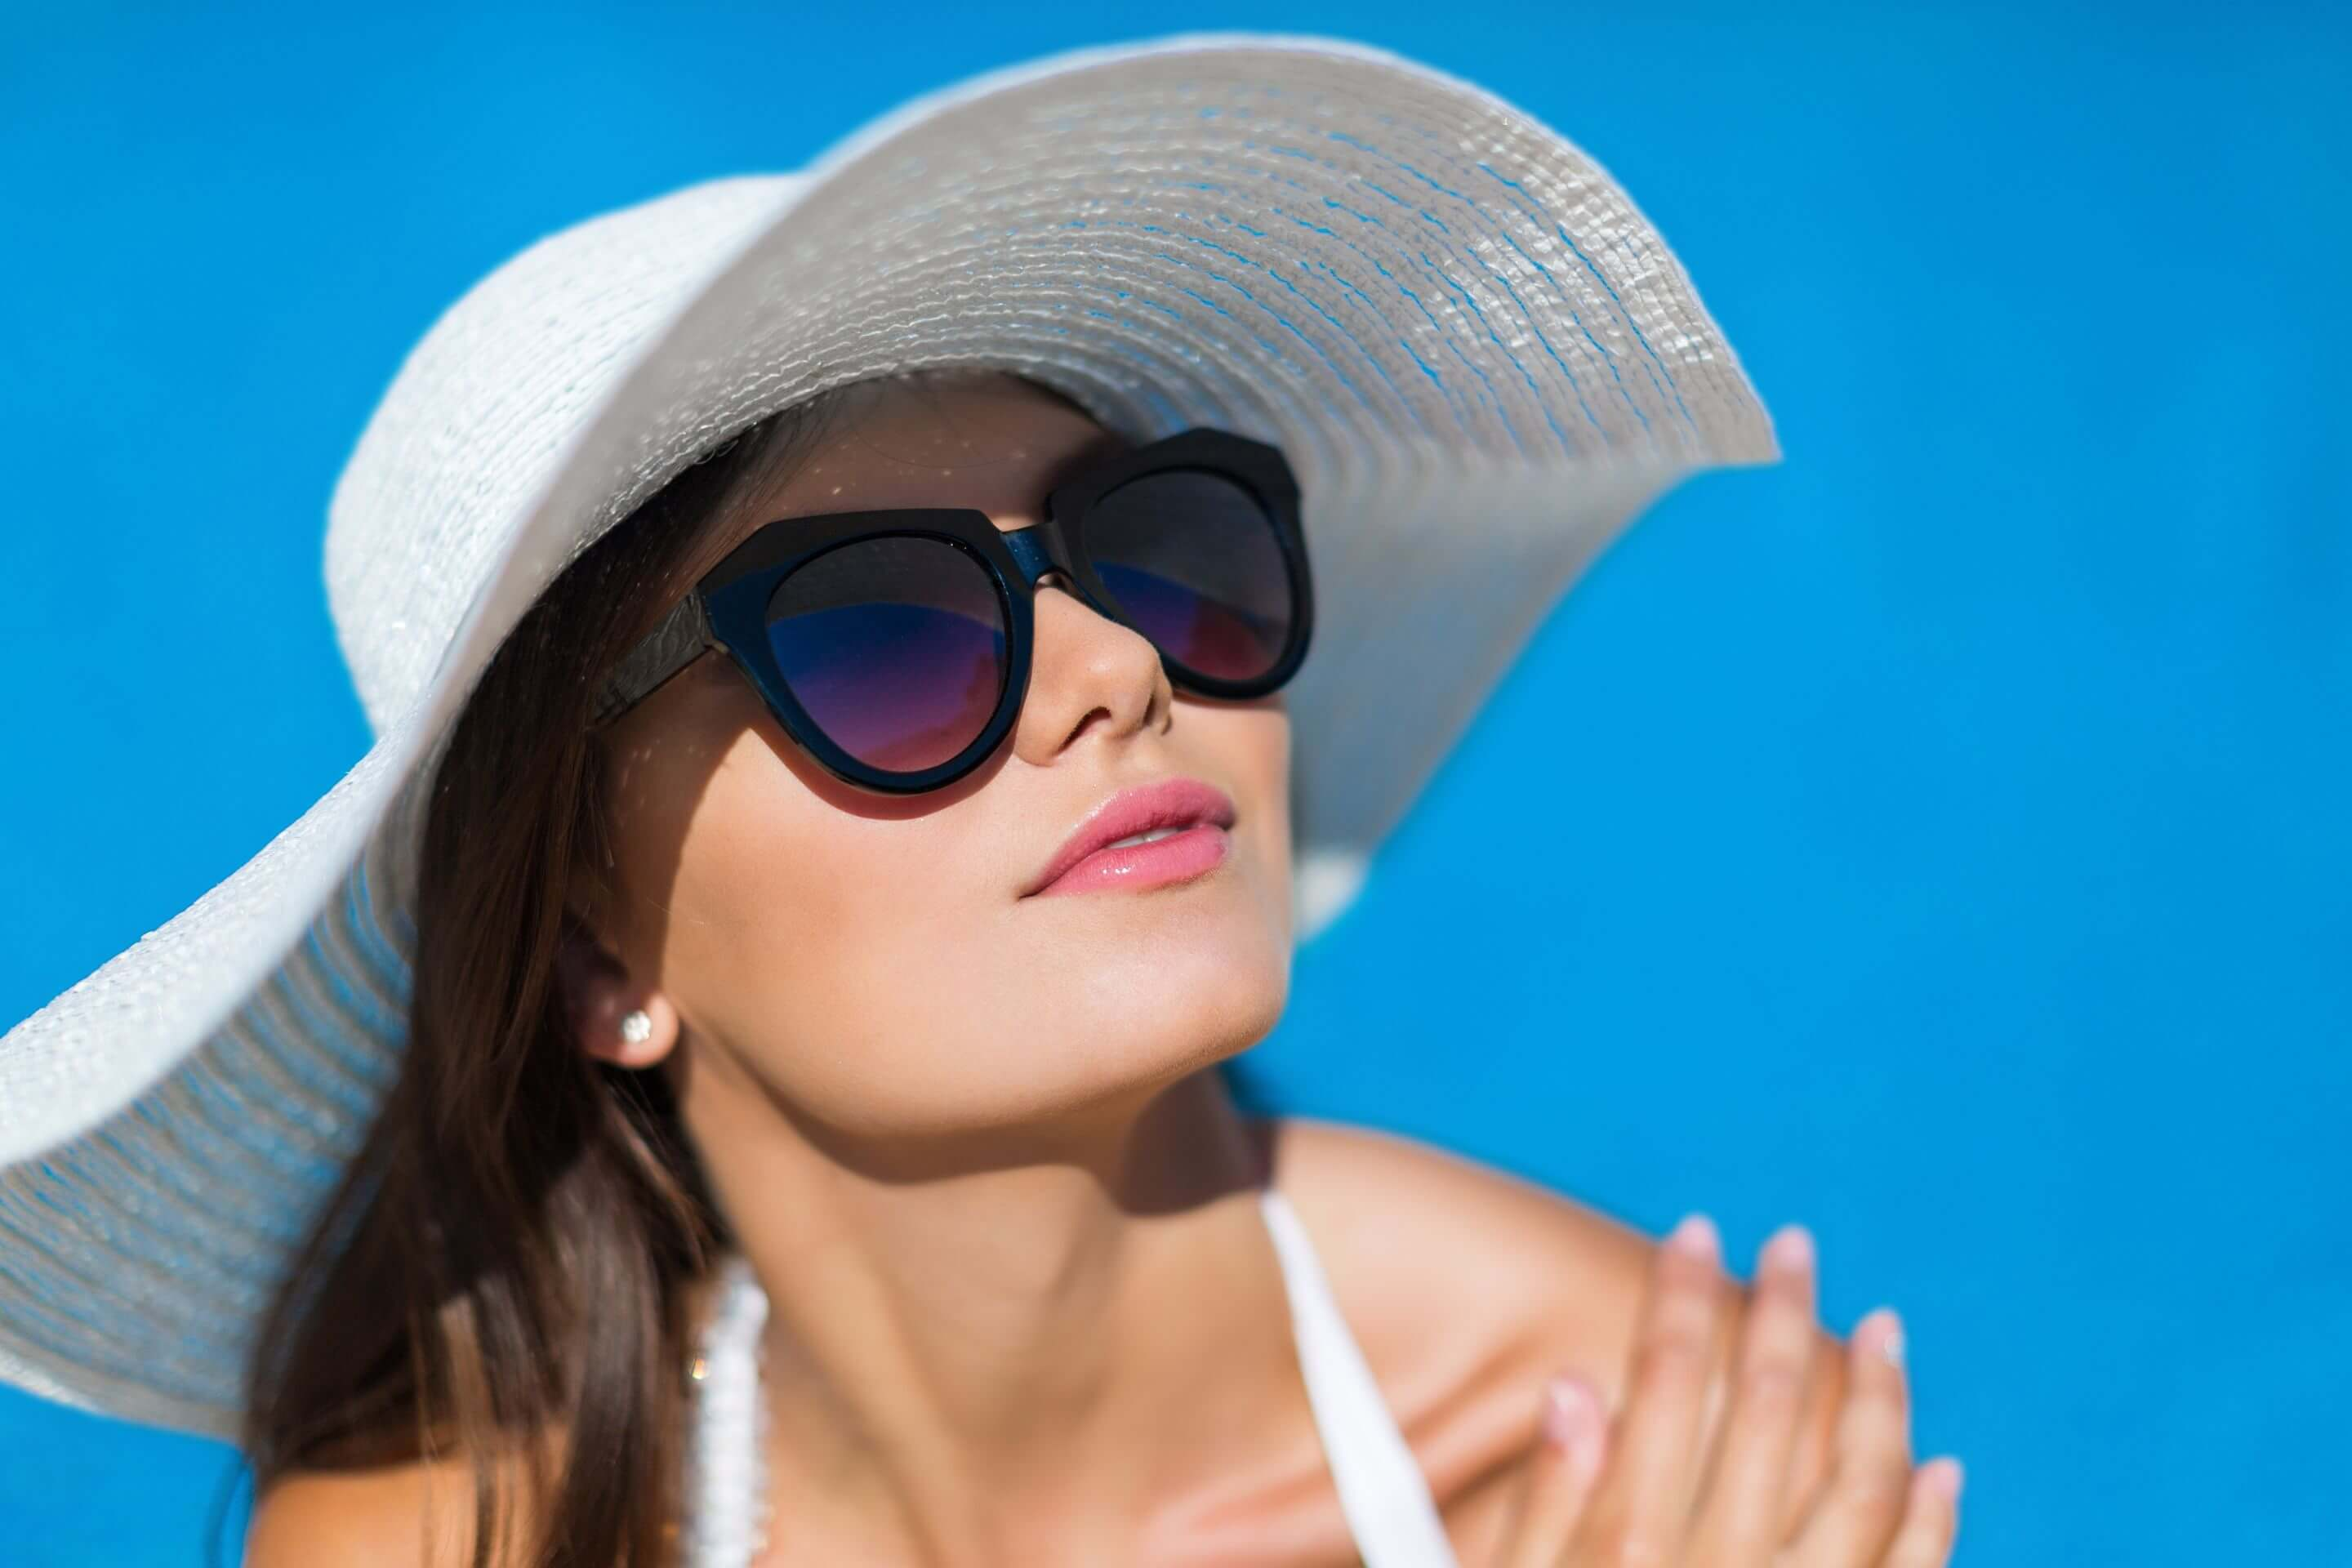 Wear sunglasses to improve your comfort and protect your eyes